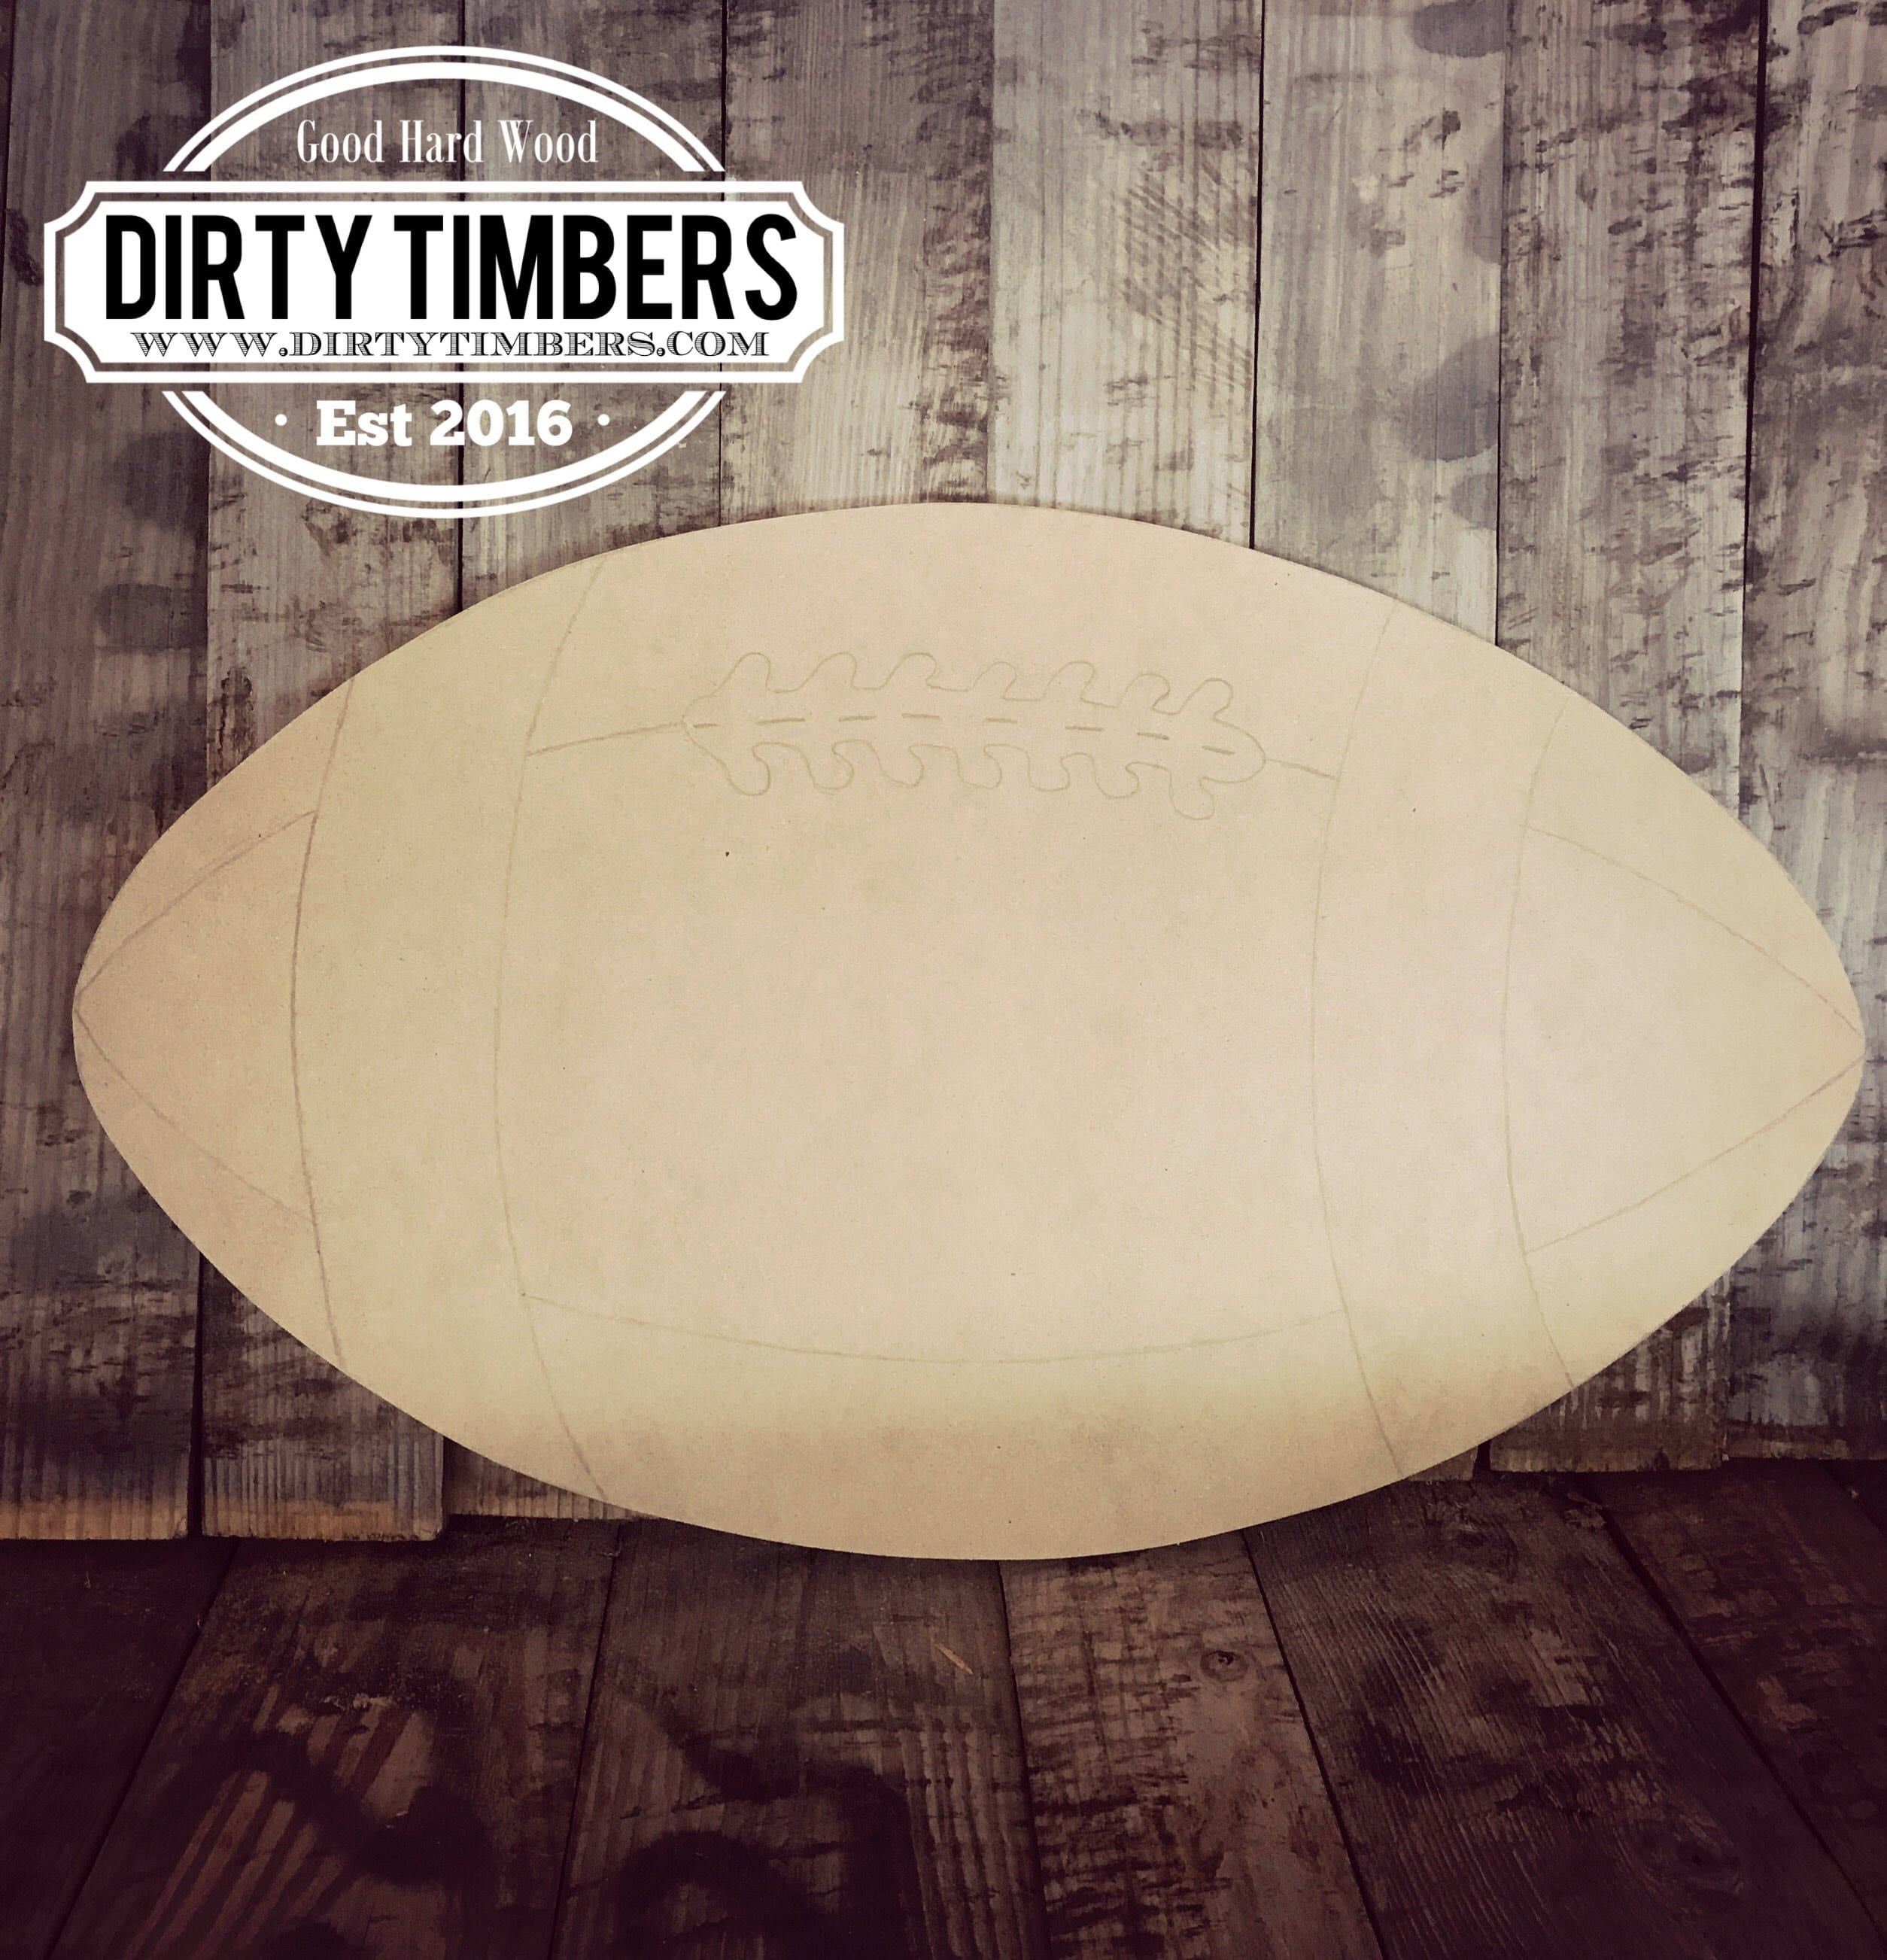 Football, Ready To Paint, Blank, DIY, Door Hanger, Sports, Football, Decor,  NFL, Unfinished, Wood, Blank, Custom, Cut Out, DT2038